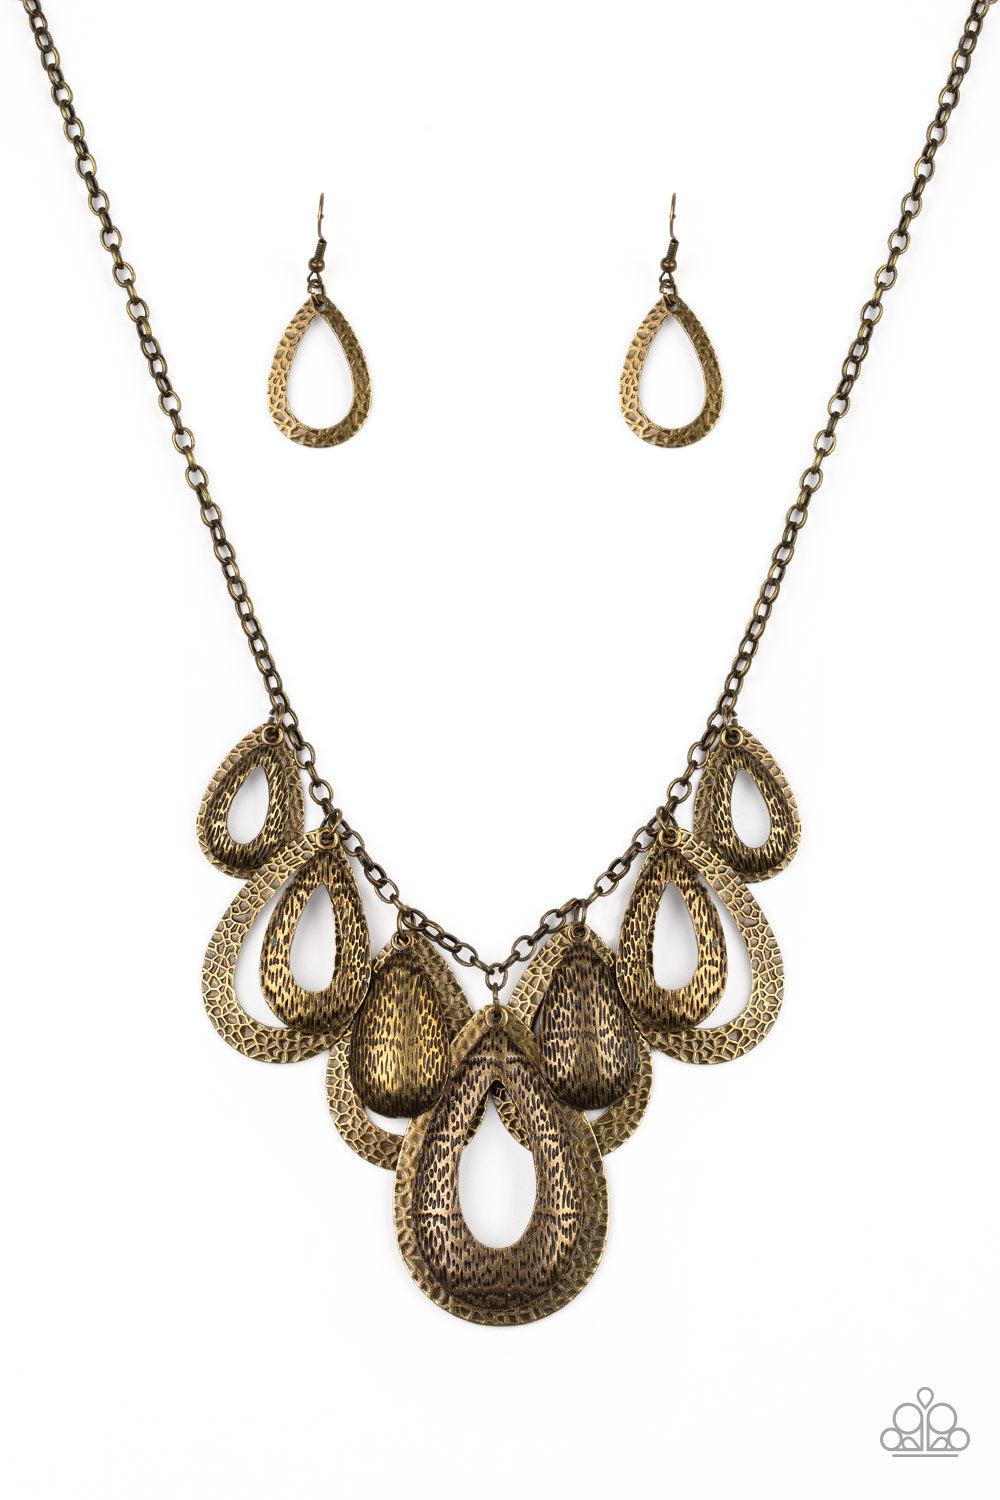 Paparazzi Accessories - Teardrop Tempest - Brass Necklace